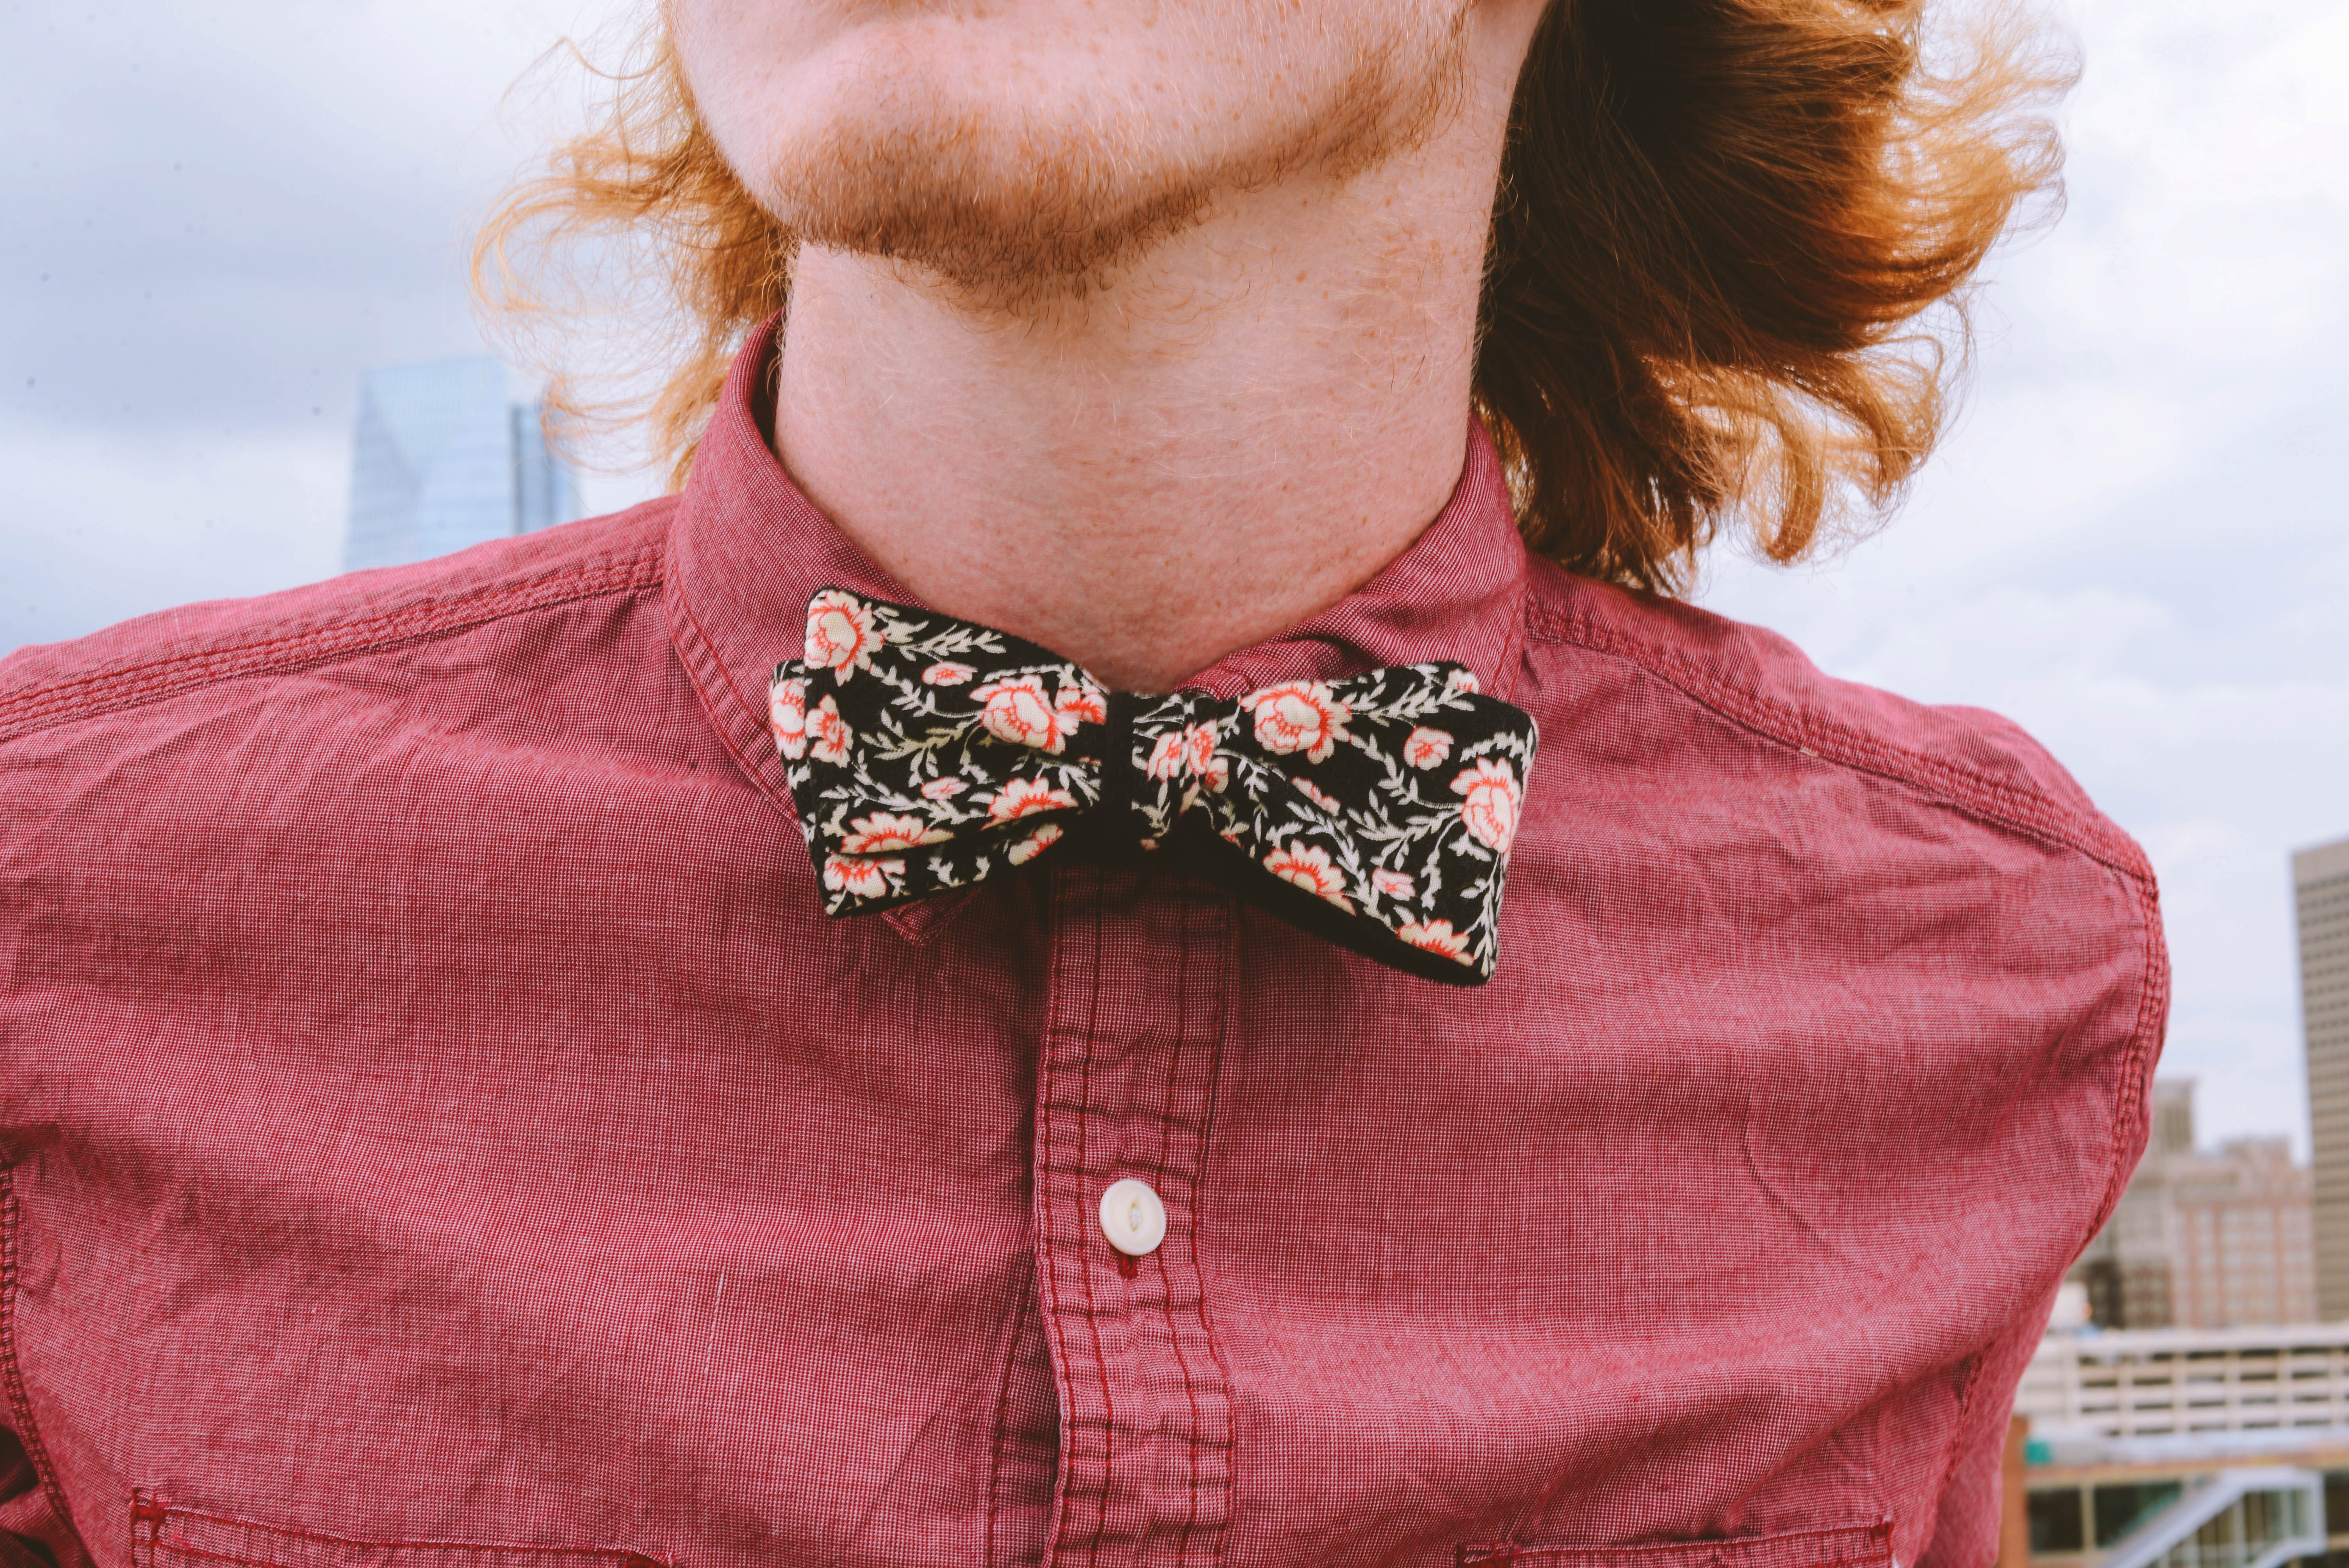 closeup photography of person wearing floral bowtie and red dress shirt